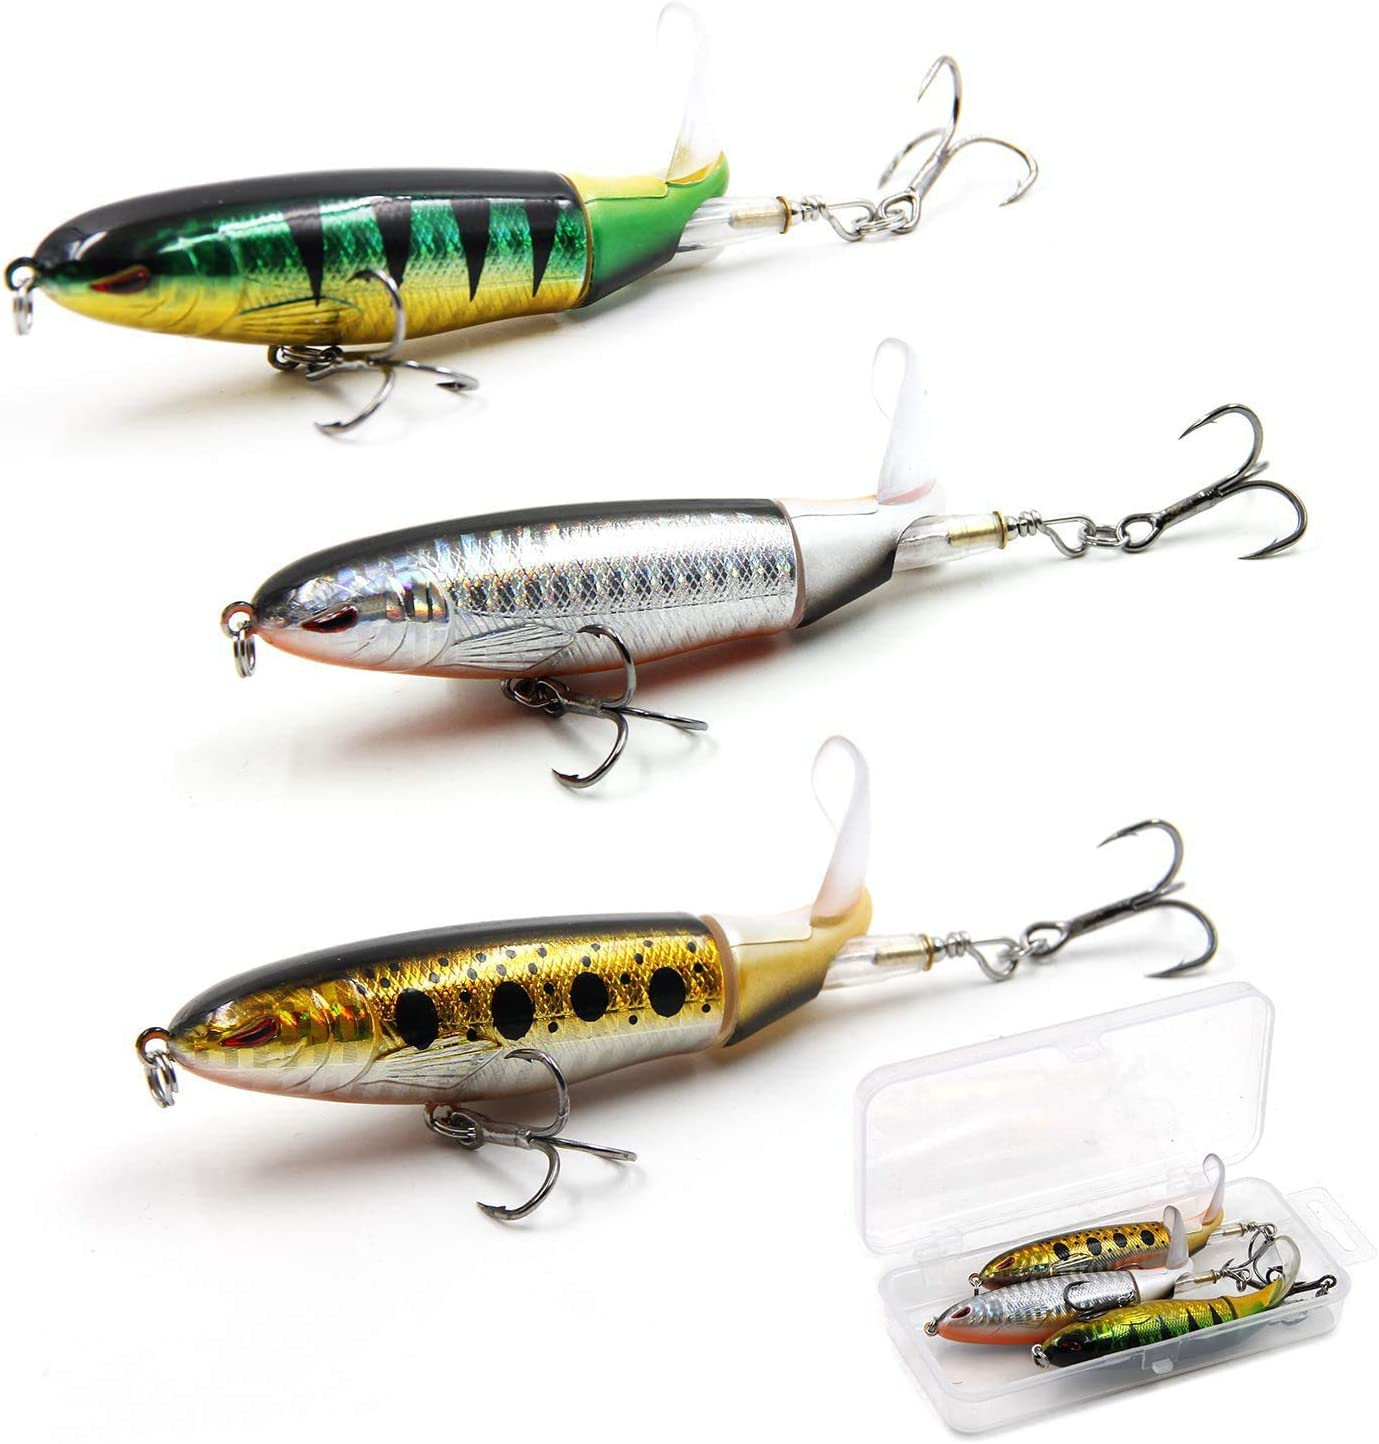 GUFIKY Lure Set 5-Pack Whopper Popper Fishing Lures Combo 5.13 inch//0.56 oz with Rotating Spins Tail for Bass,Trout,Walleye,Pike and Musky Topwater Floating Hard Baits